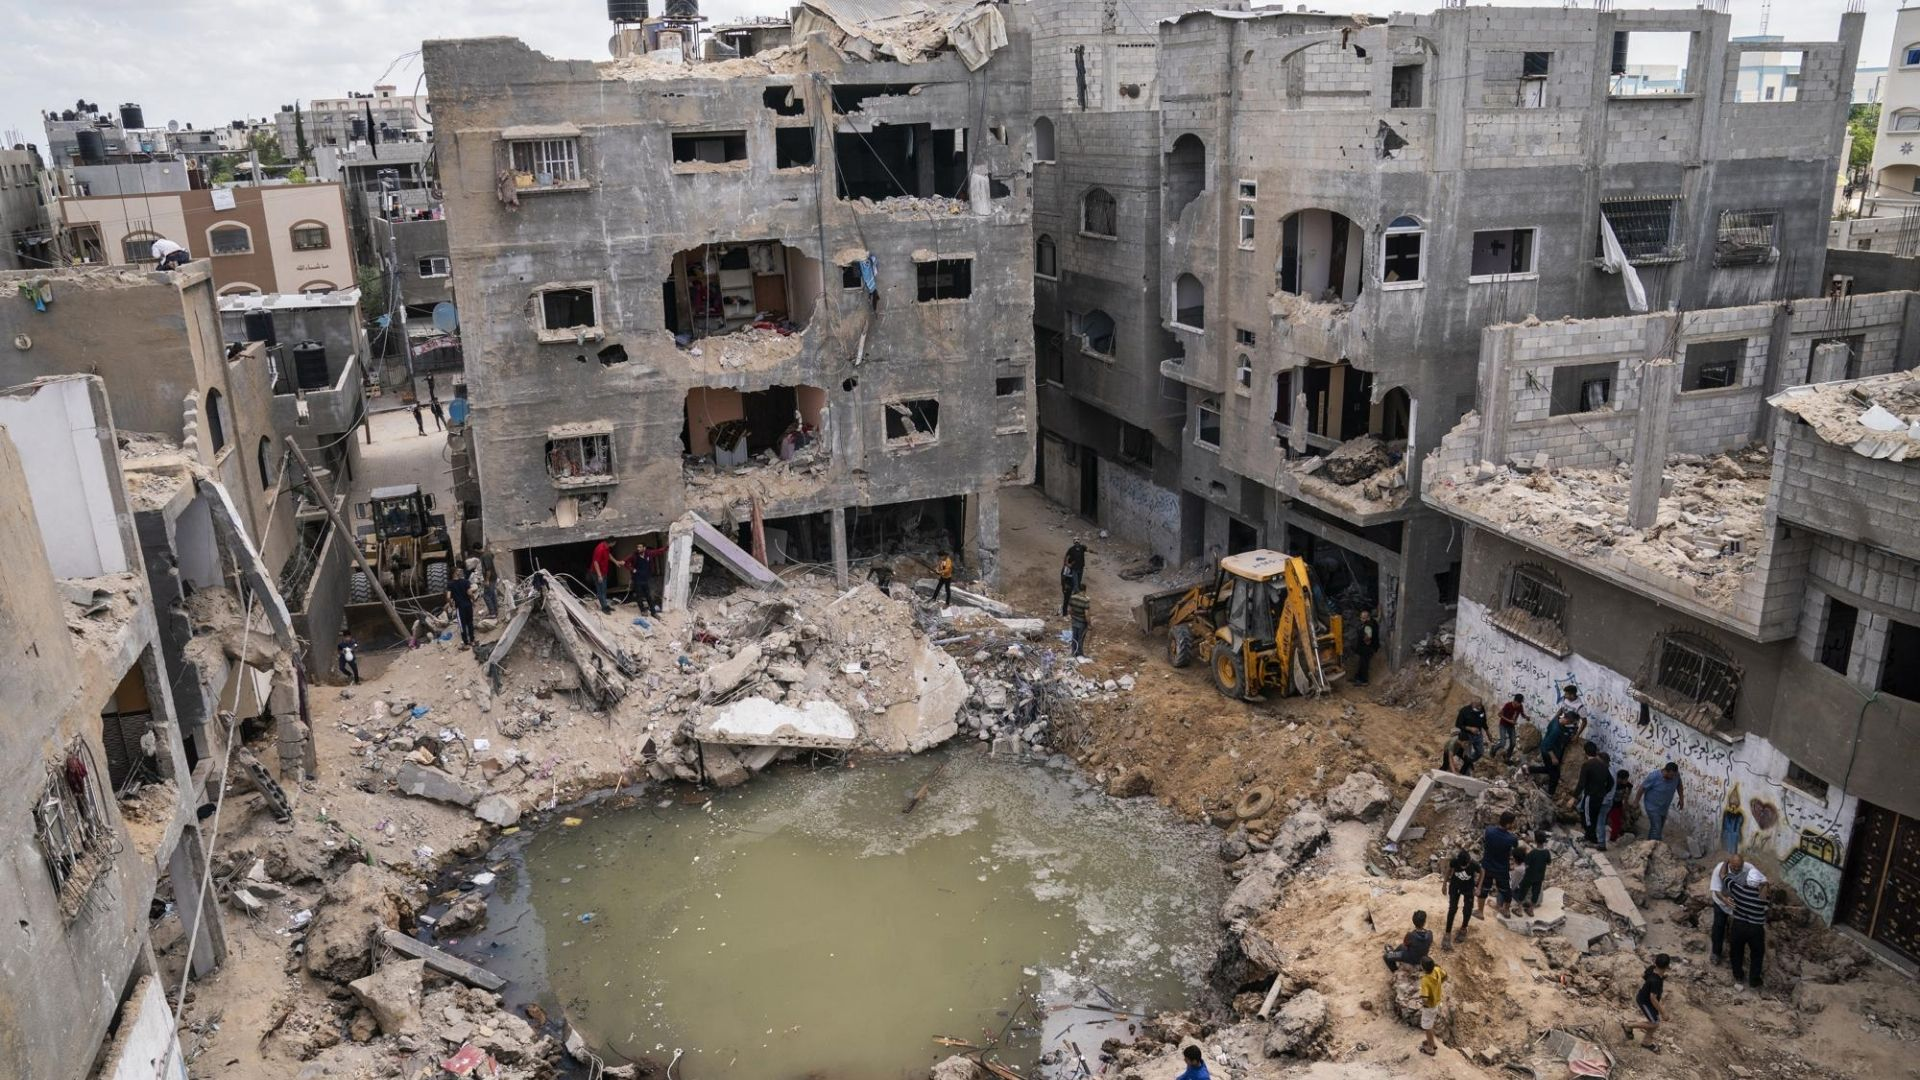 Amid ceasefire after 11-day war, displaced in Gaza face familiar plight